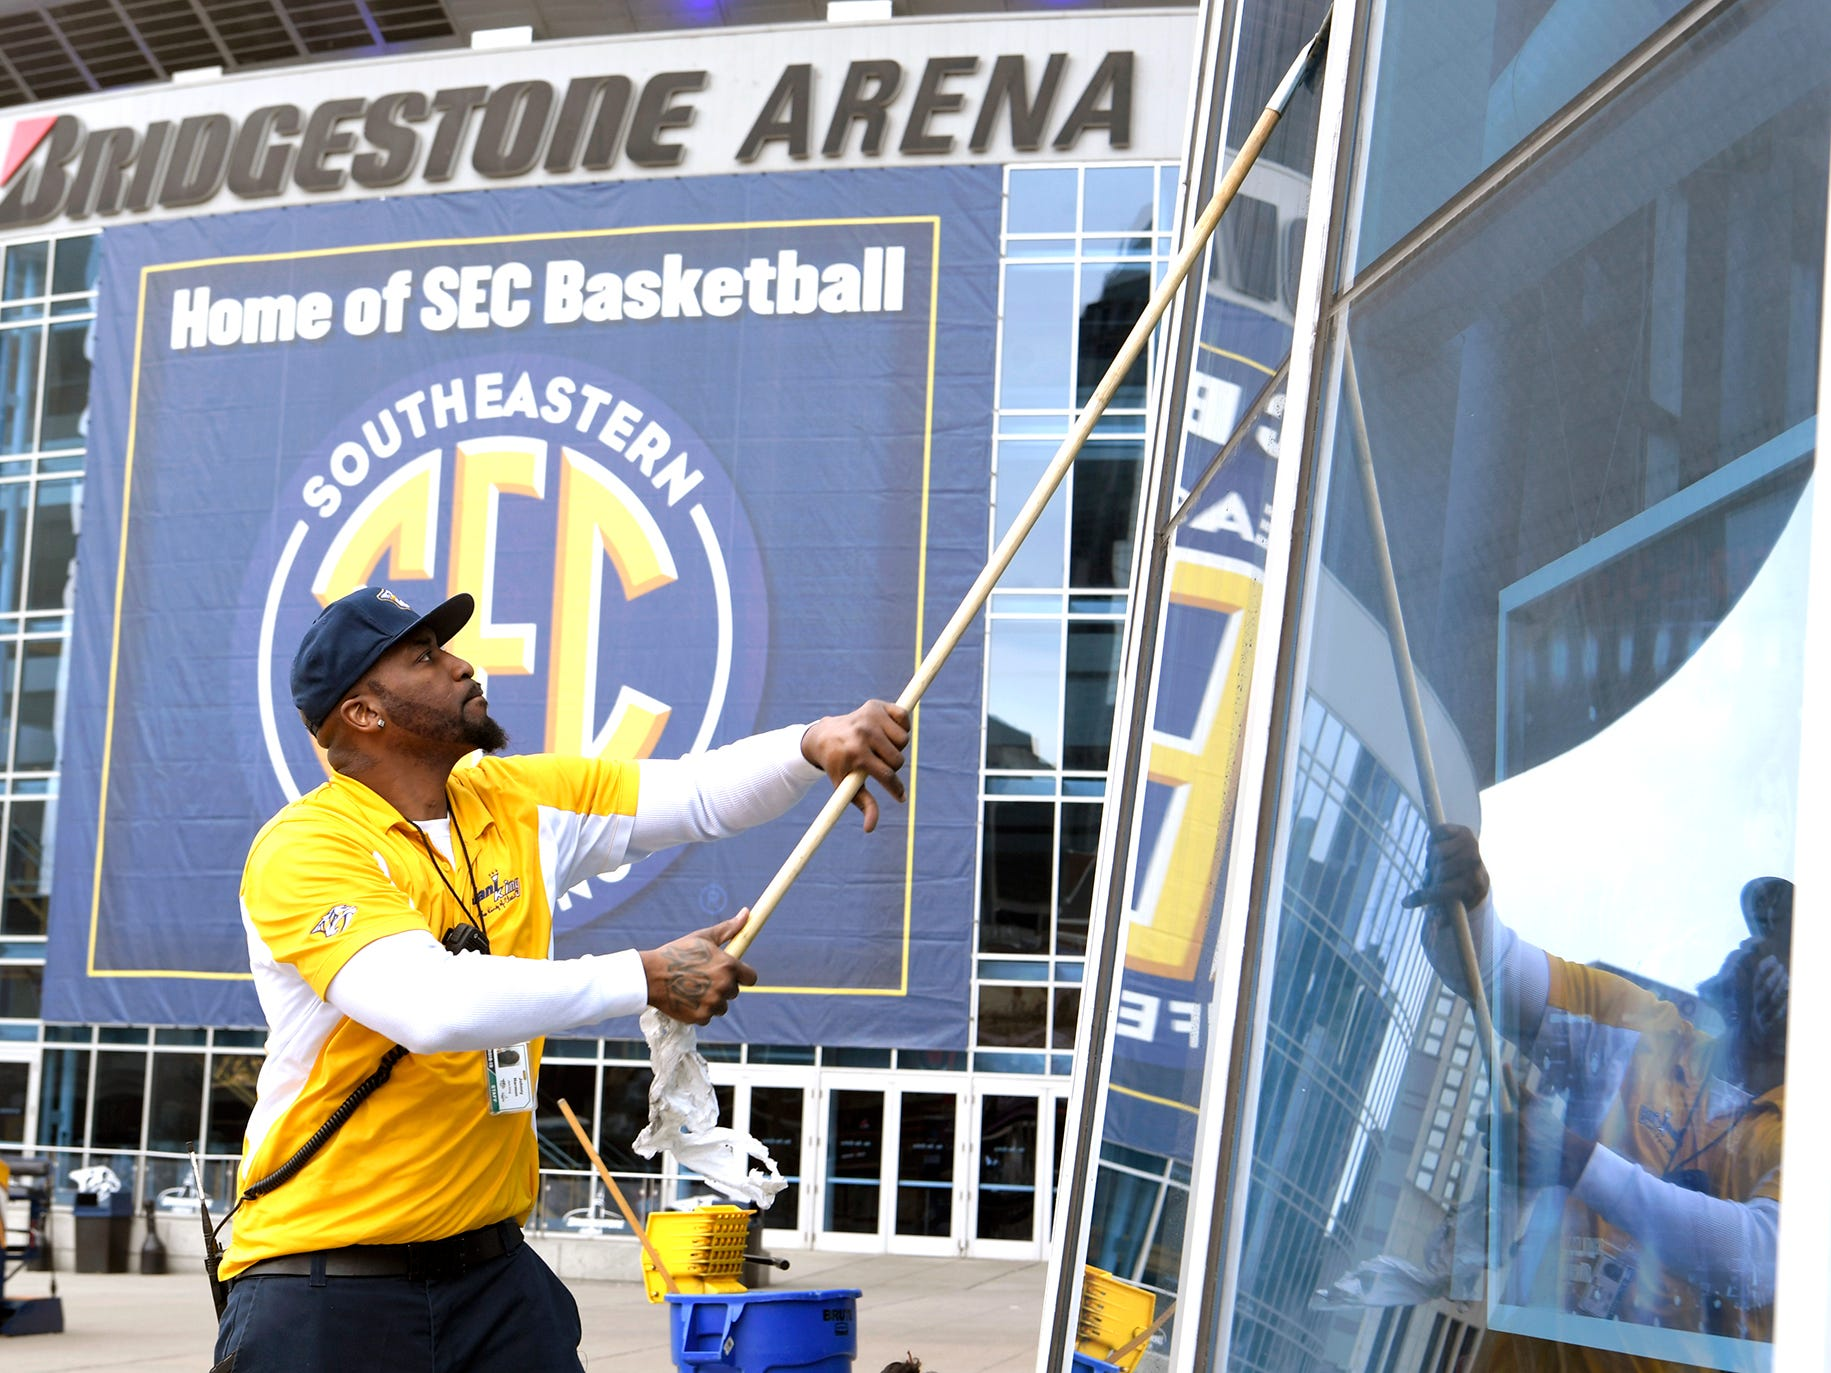 Johnny Harmon cleans the windows outside Bridgestone Arena before the SEC Men's Basketball Tournament in Nashville on Wednesday, March 13, 2019.